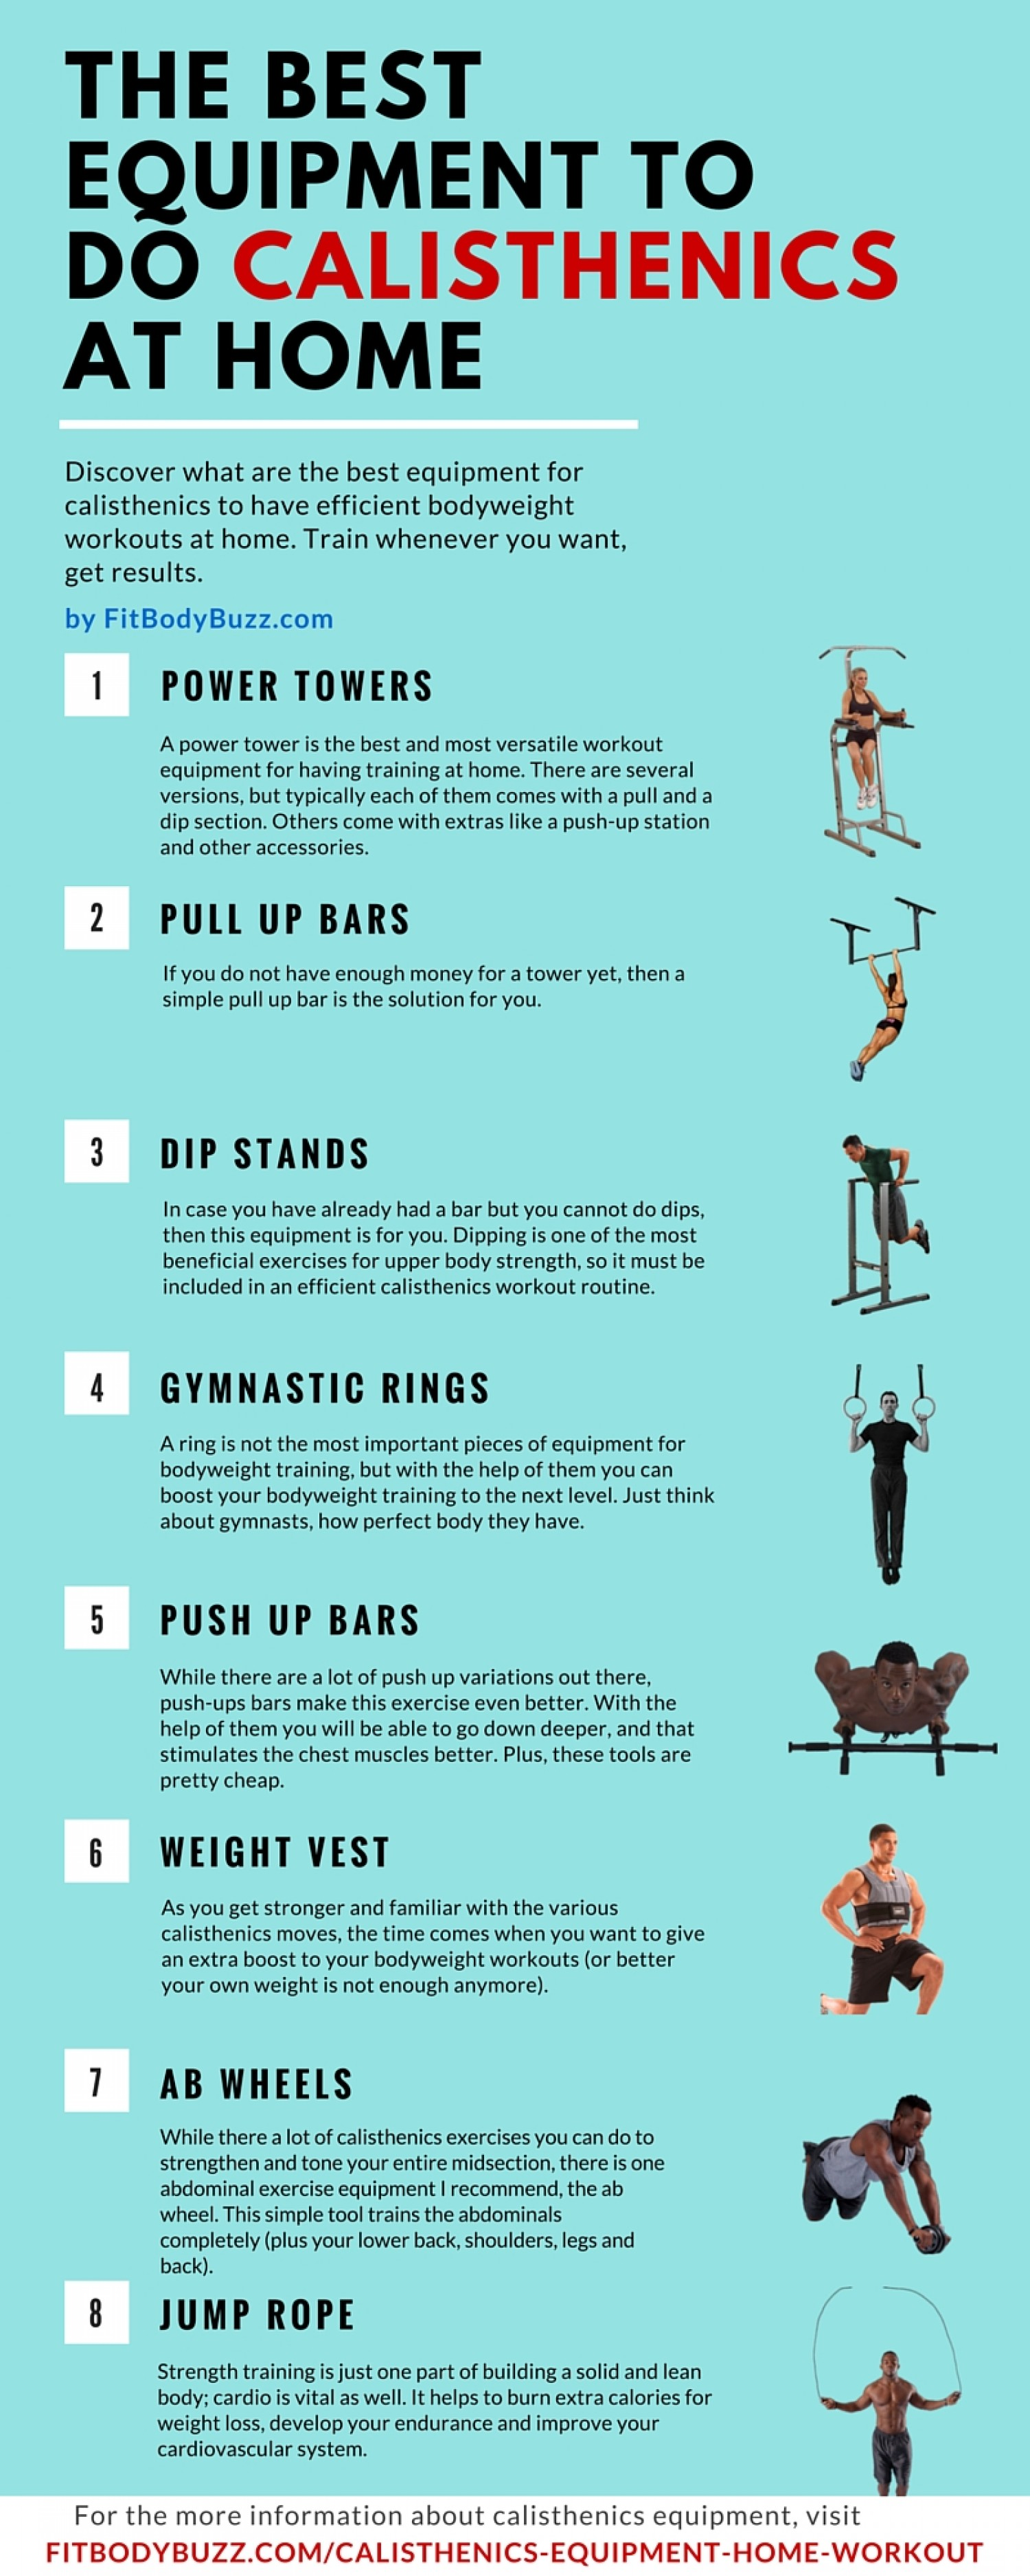 The Best Equipment To Do Calisthenics At Home